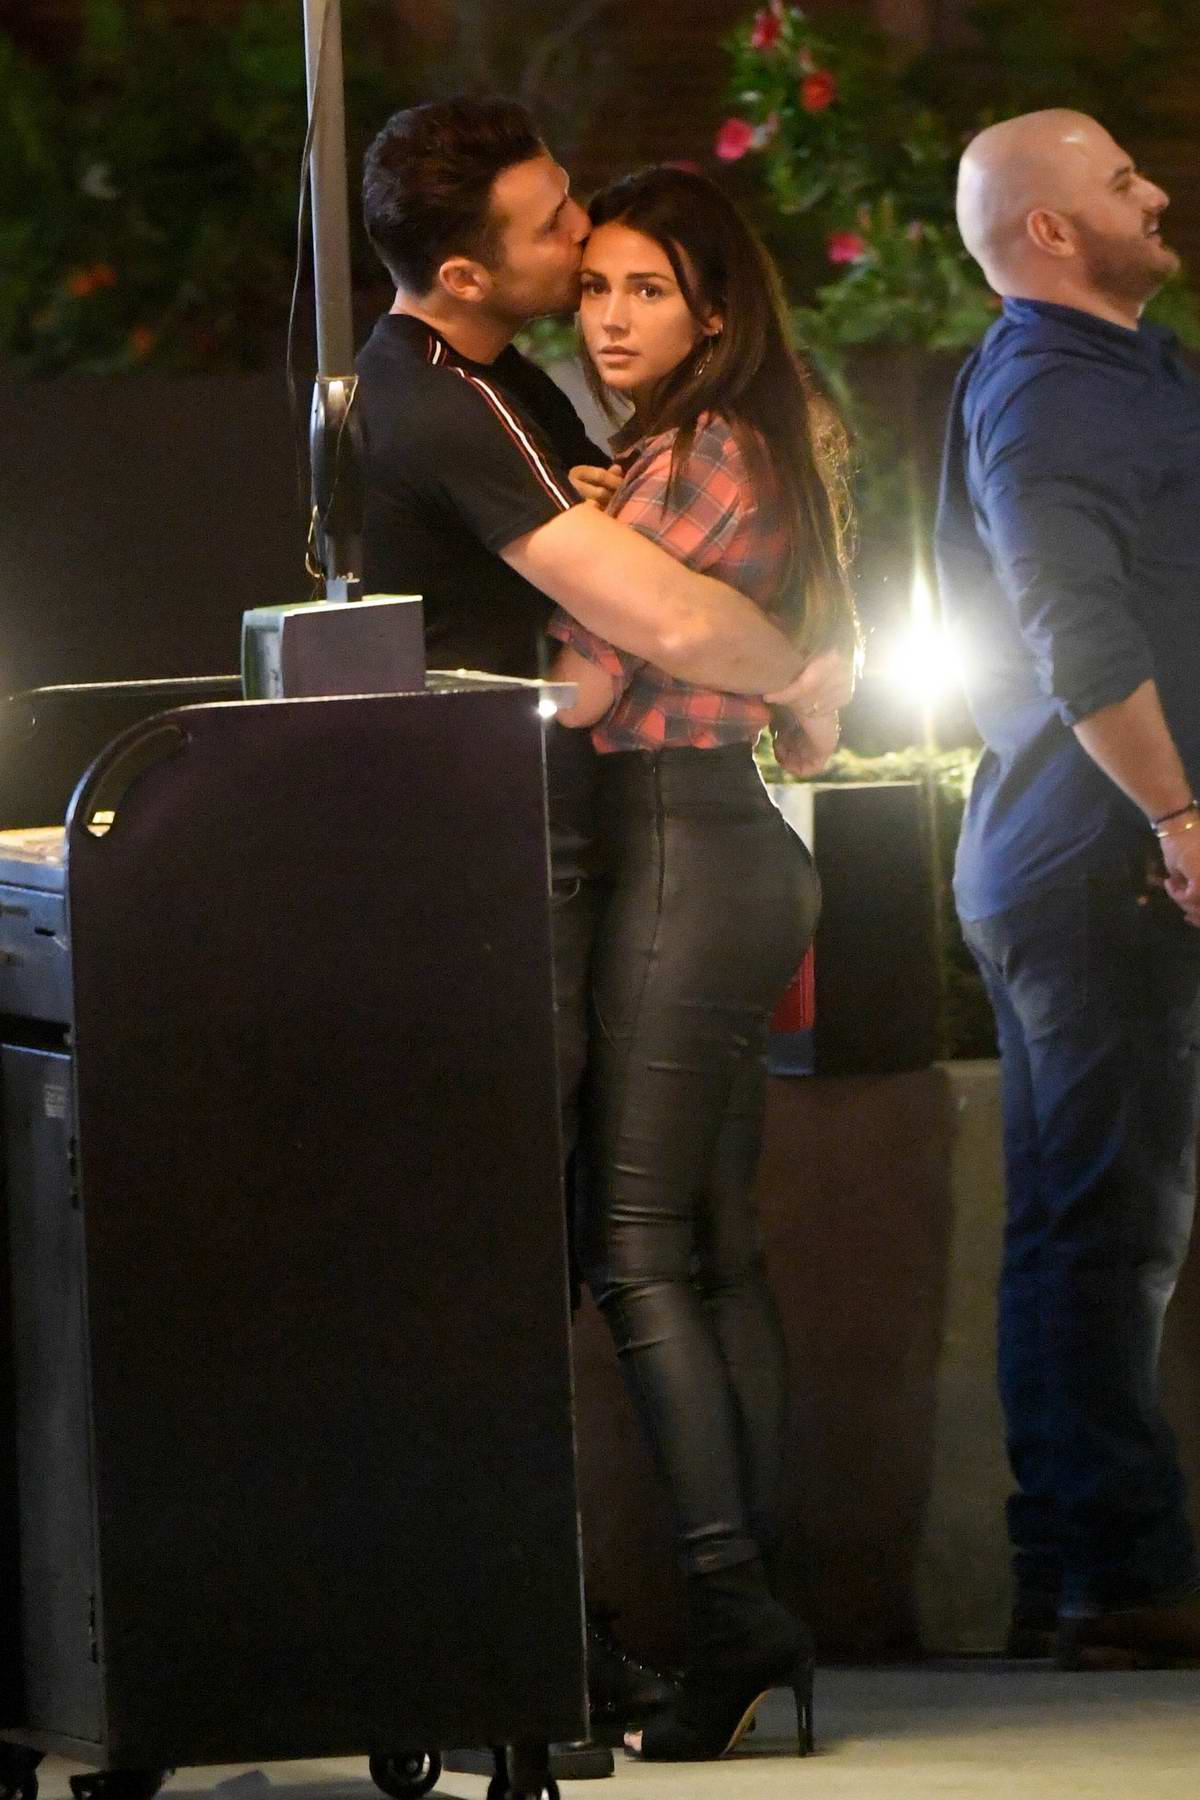 Michelle Keegan and Mark Wright share a kiss while waiting at the valet after dinner in Brentwood, Los Angeles